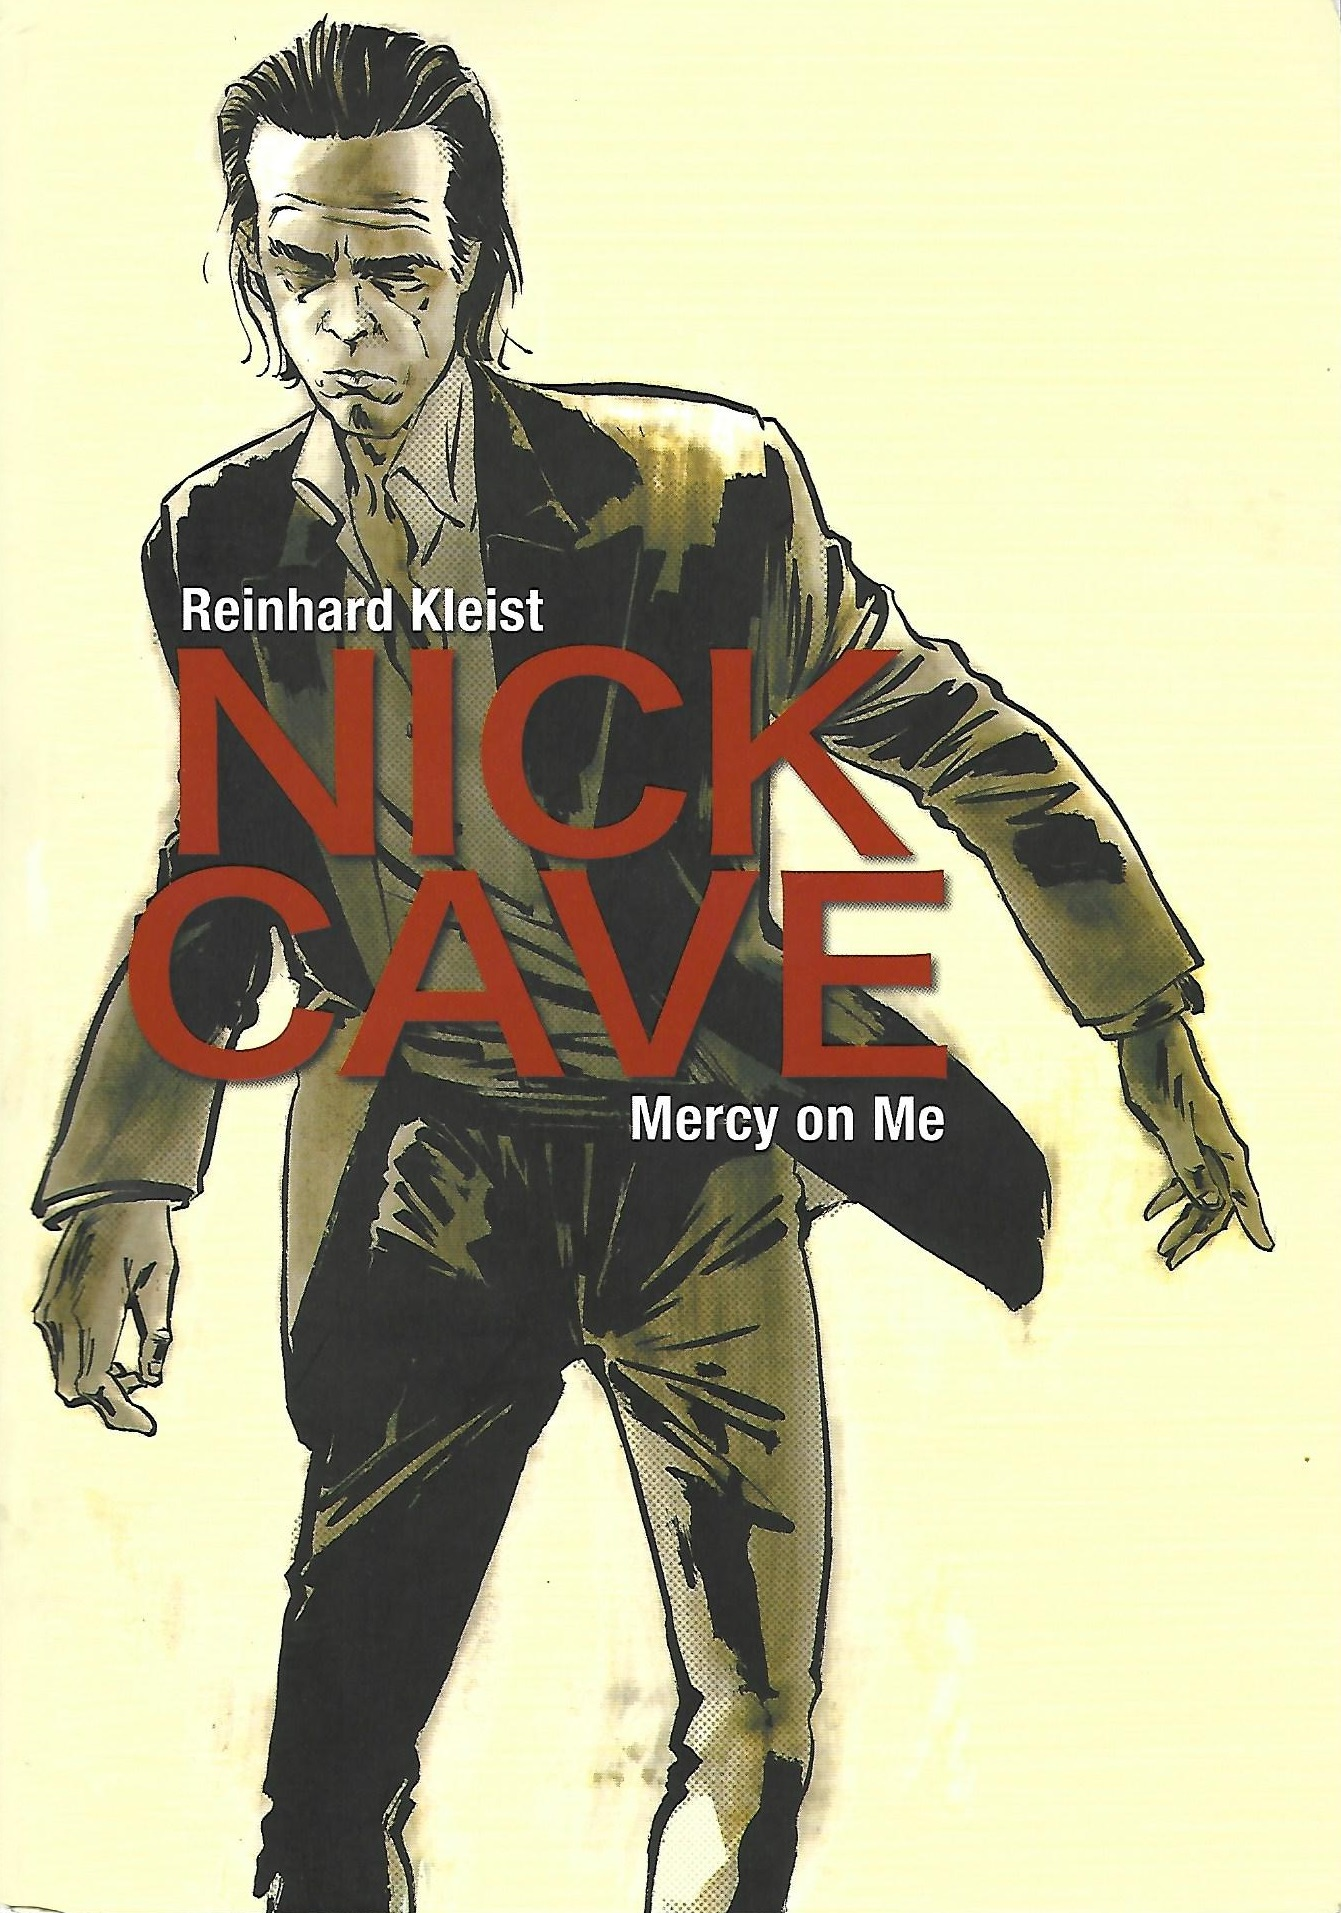 critique chronique review reinhard kleist nick cave mercy on me the bad seeds the birthday party the boys next door graphic novel comics comic book bande dessinée bd selfmadehero